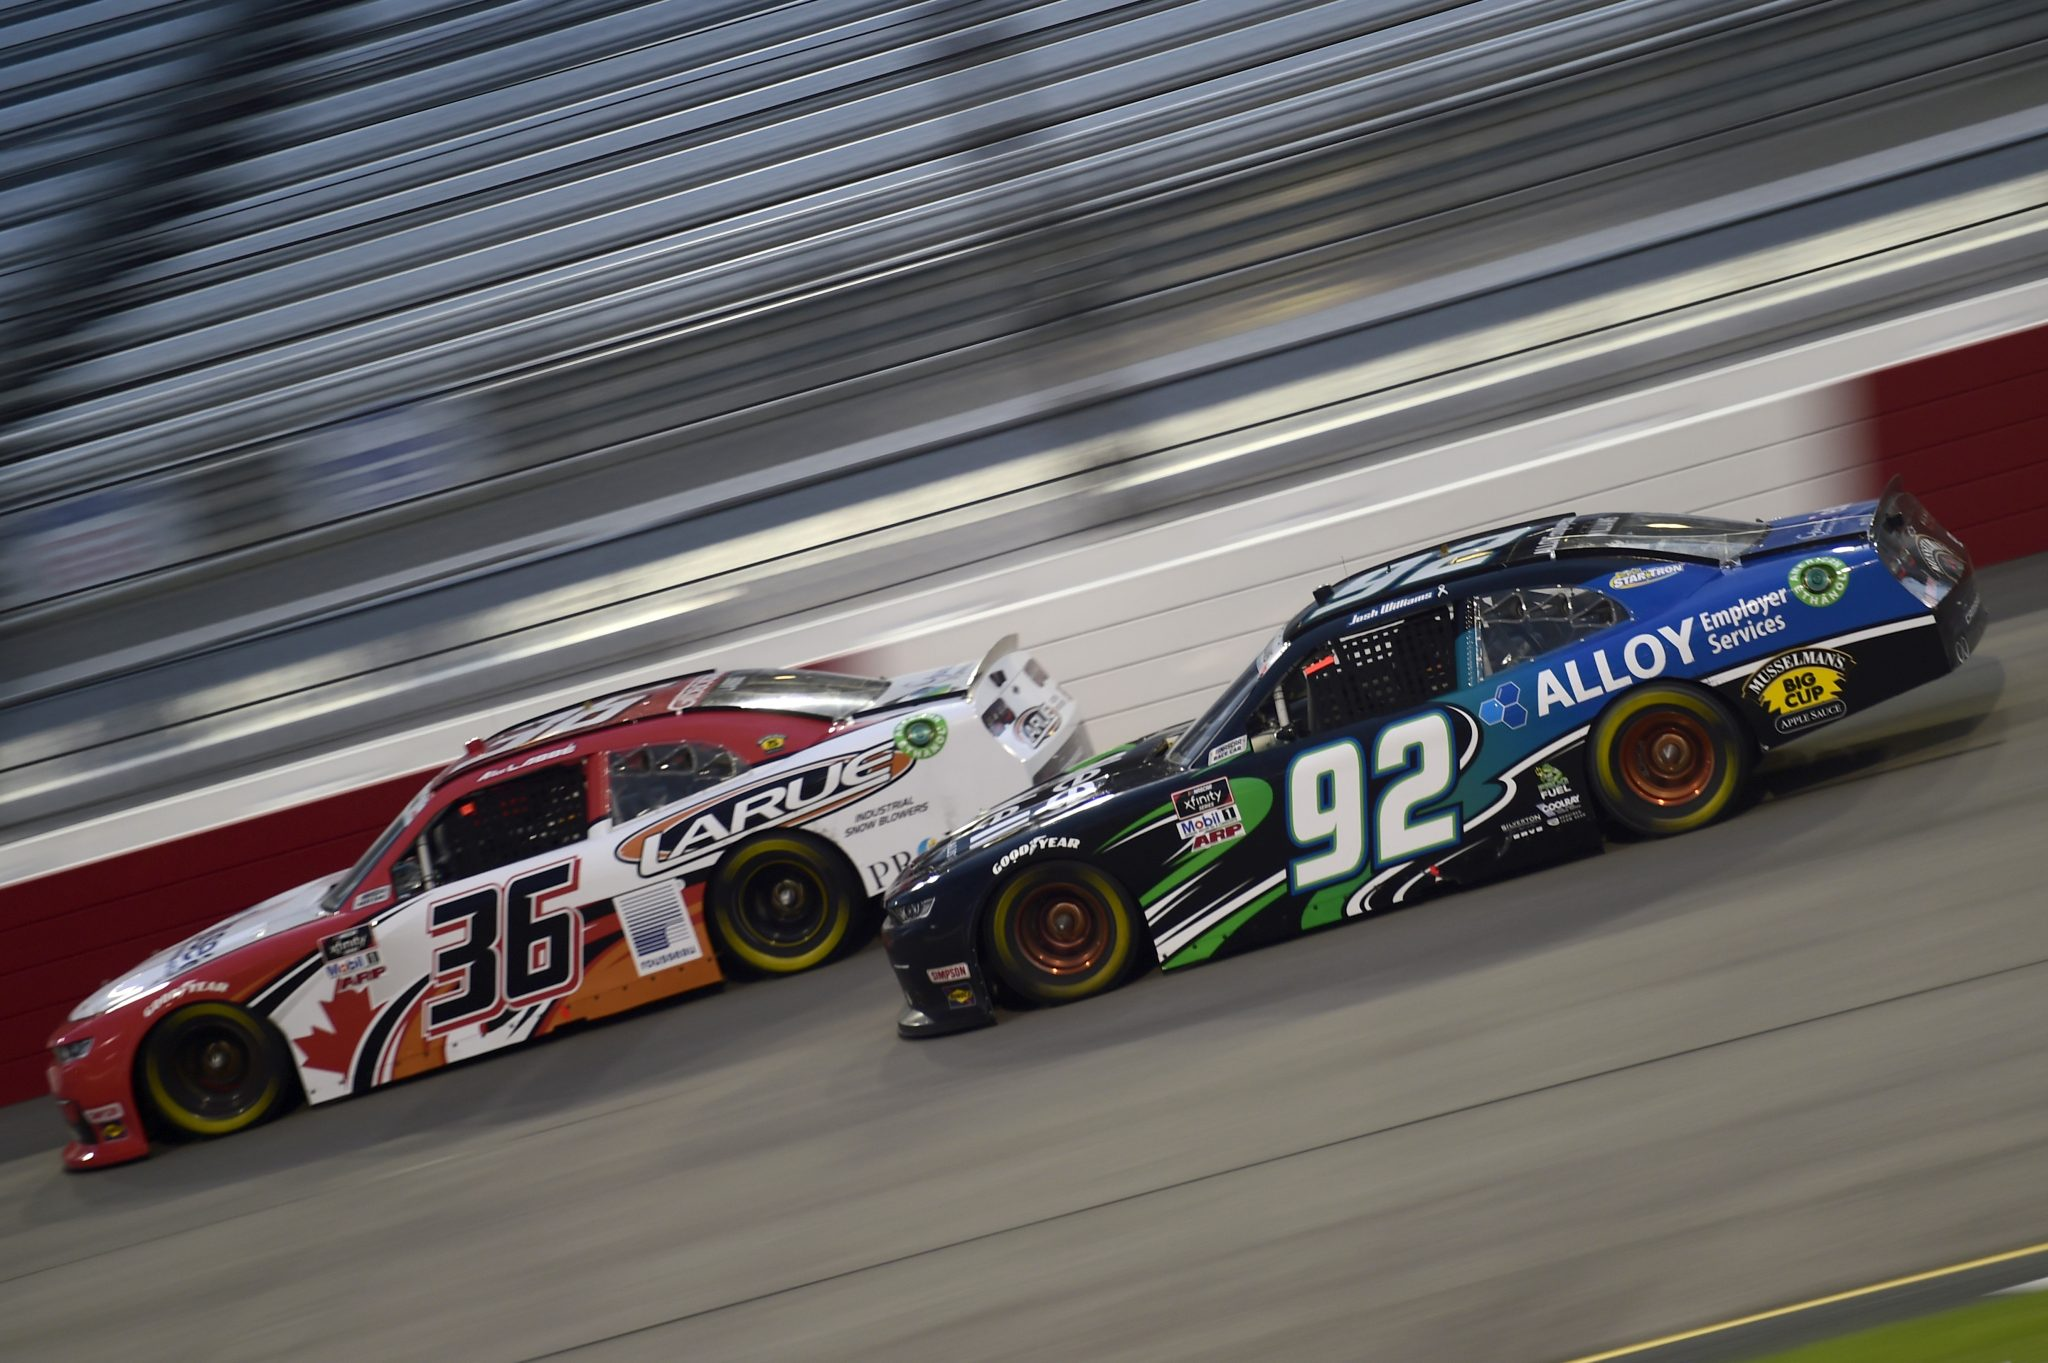 RICHMOND, VIRGINIA - SEPTEMBER 11: Josh Williams, driver of the #92 DGM Racing Chevrolet, and Alex Labbe, driver of the #36 DGM Racing Chevrolet, race during the NASCAR Xfinity Series Go Bowling 250 at Richmond Raceway on September 11, 2020 in Richmond, Virginia. (Photo by Jared C. Tilton/Getty Images) | Getty Images